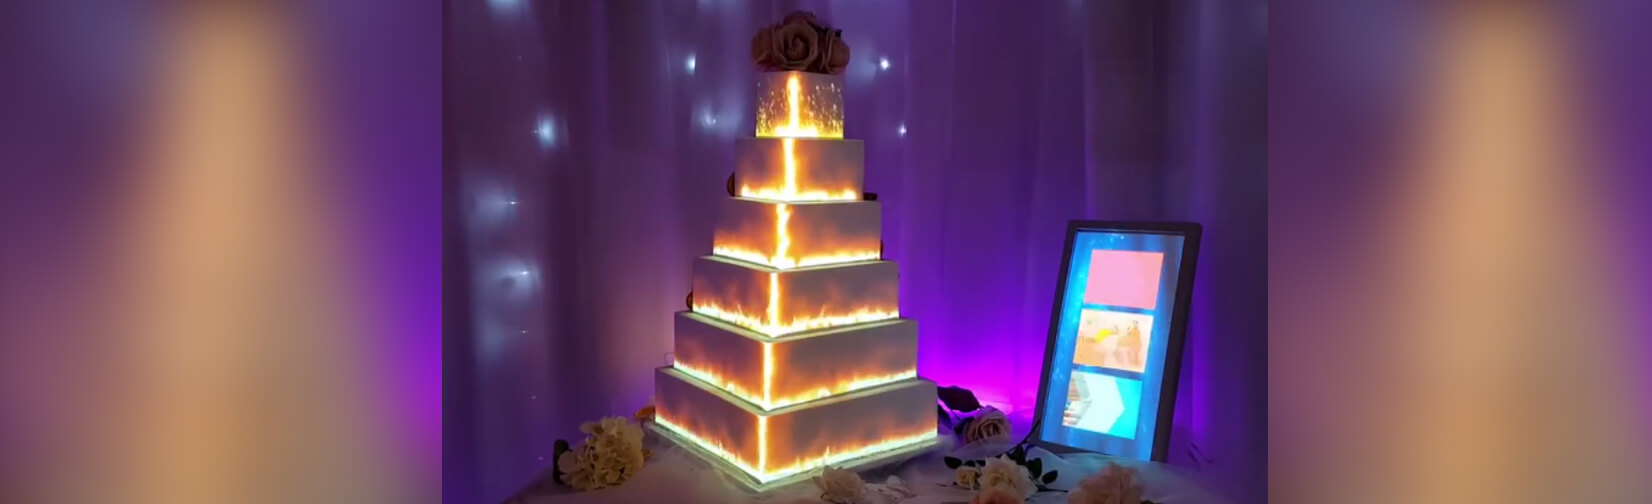 couples project moving video images onto their wedding cakes